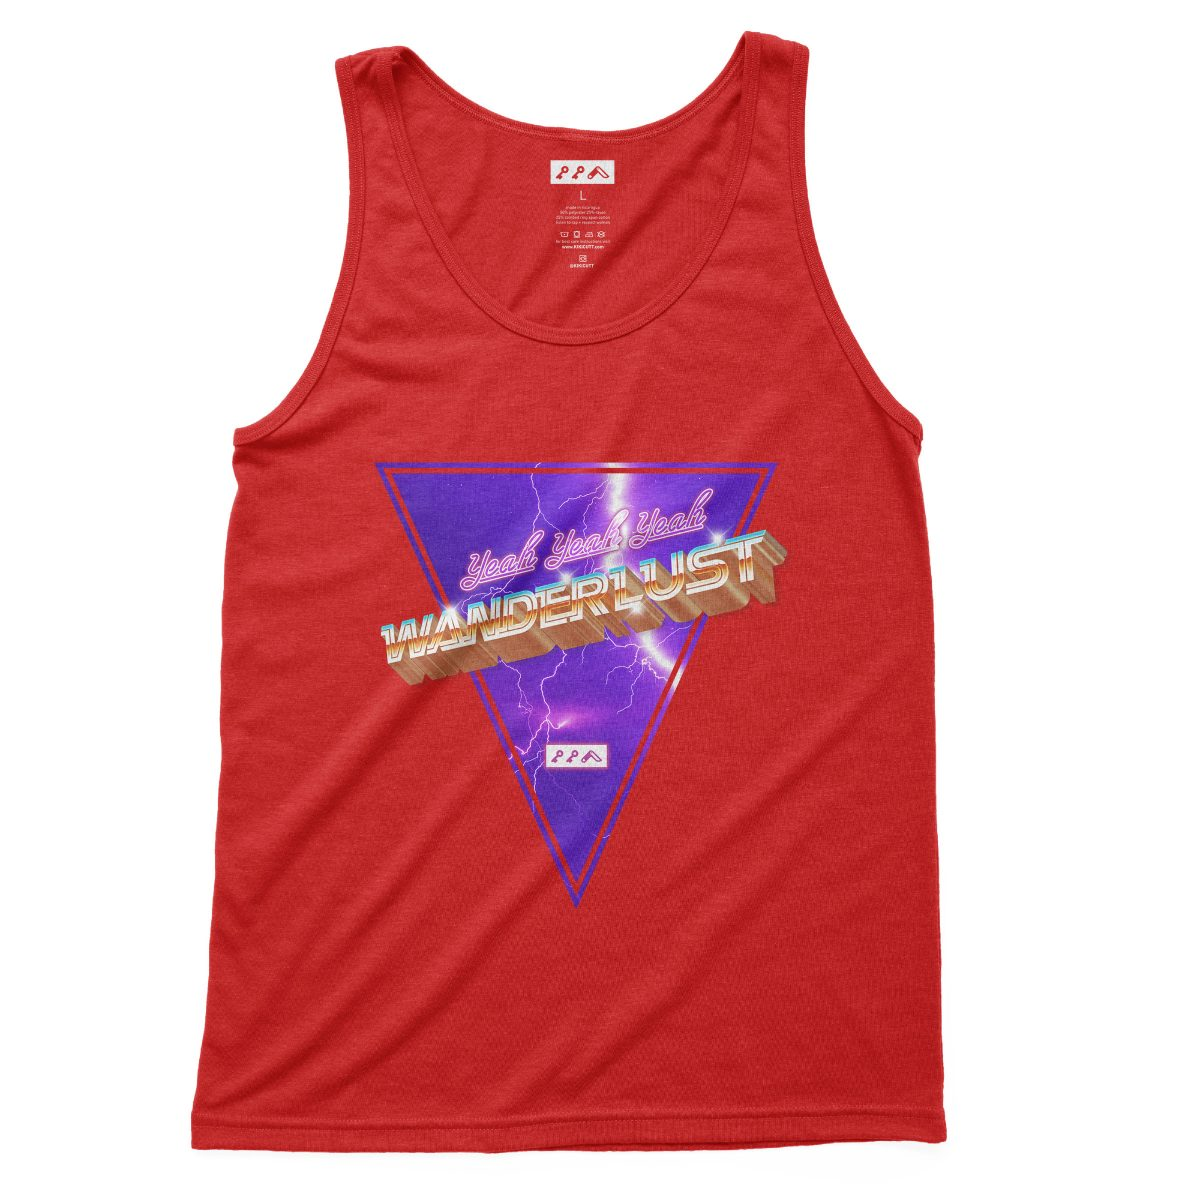 """WANDERLUST"" music festival band tank top in red by kikicutt"